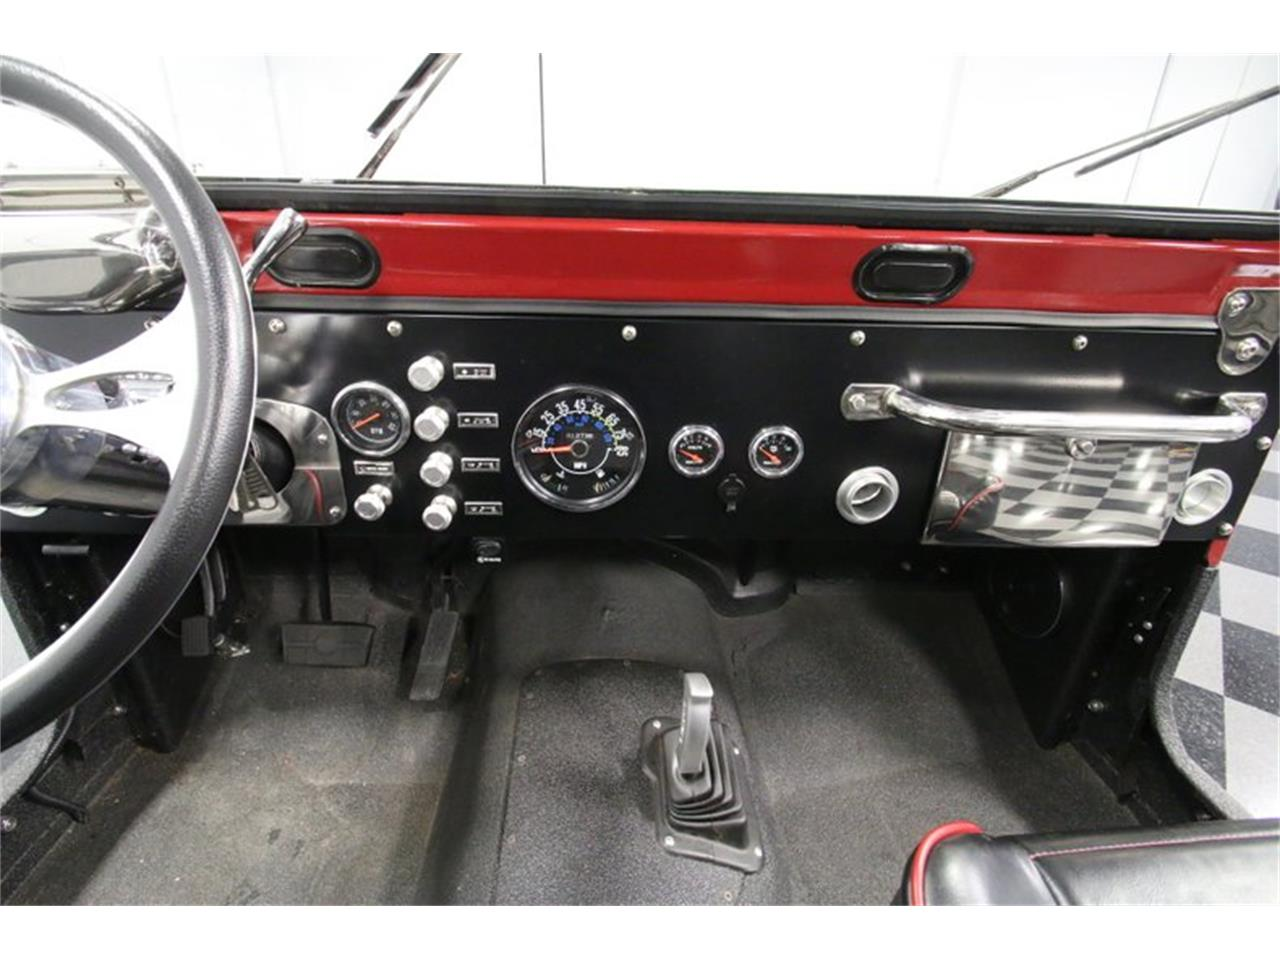 1982 Jeep CJ7 for sale in Lithia Springs, GA – photo 51